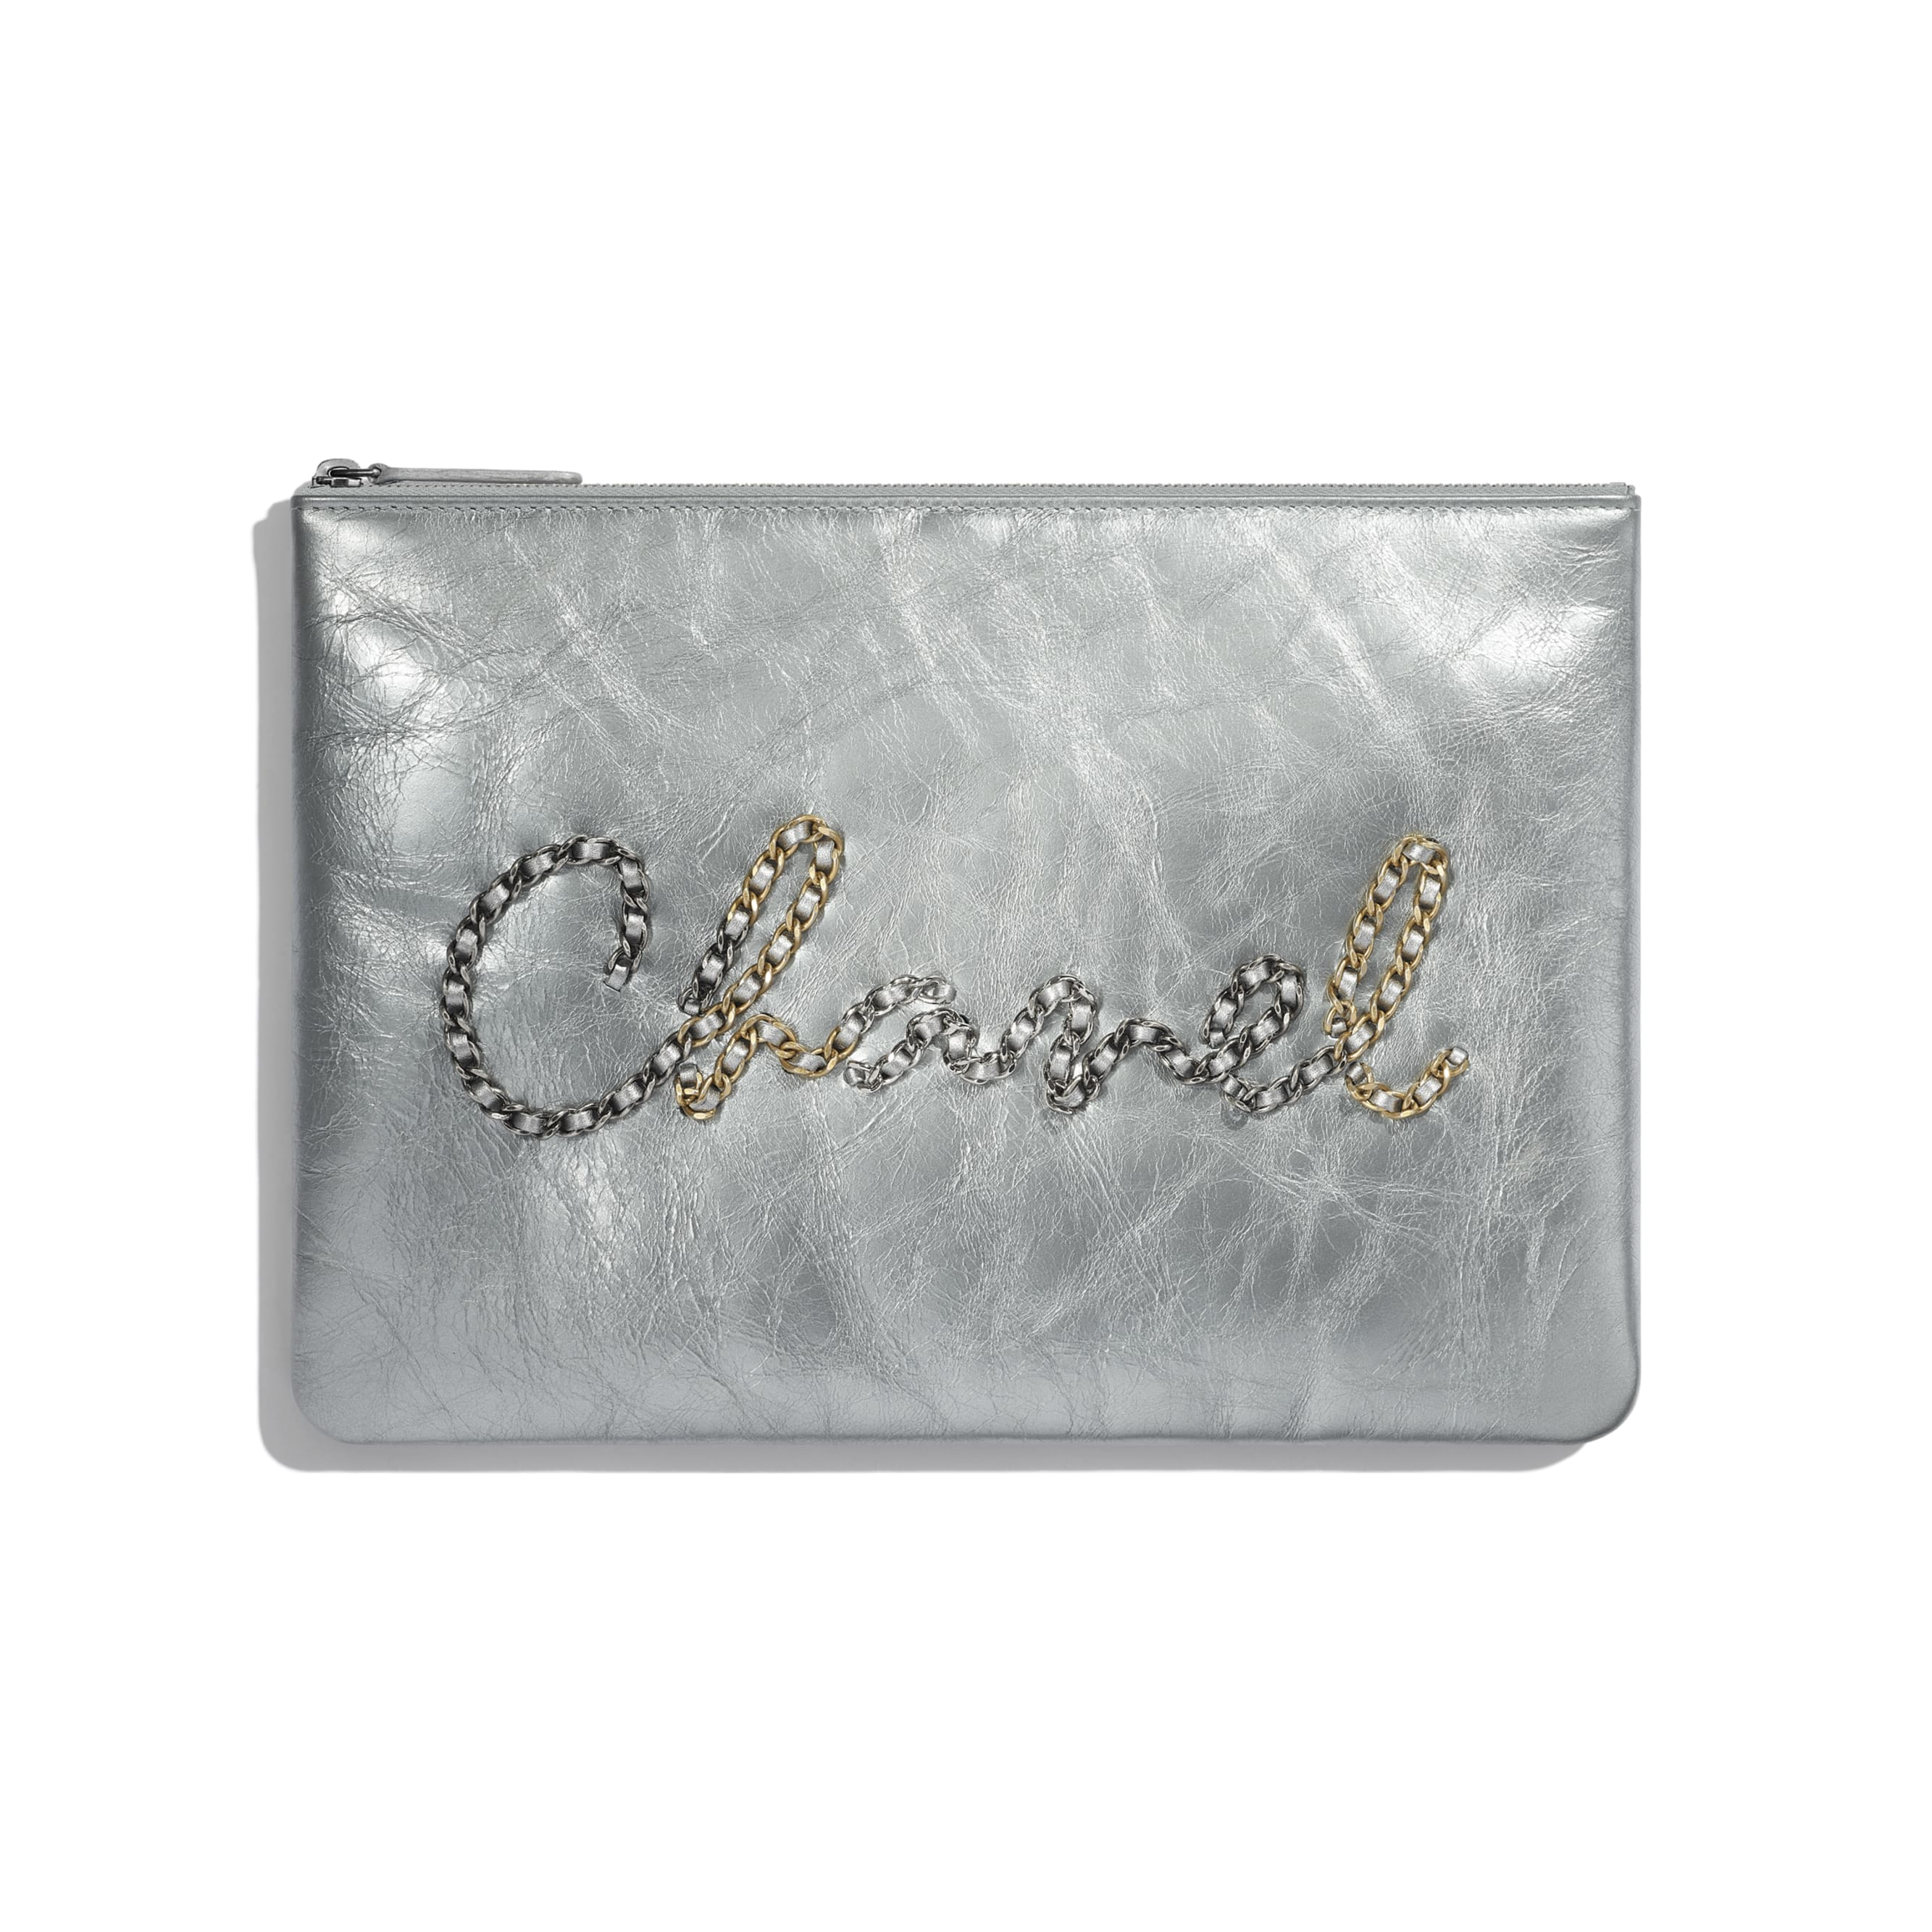 Pouch - Silver - Metallic Crumpled Calfksin, Gold-Tone, Silver-Tone & Ruthenium-Finish Metal - Default view - see standard sized version